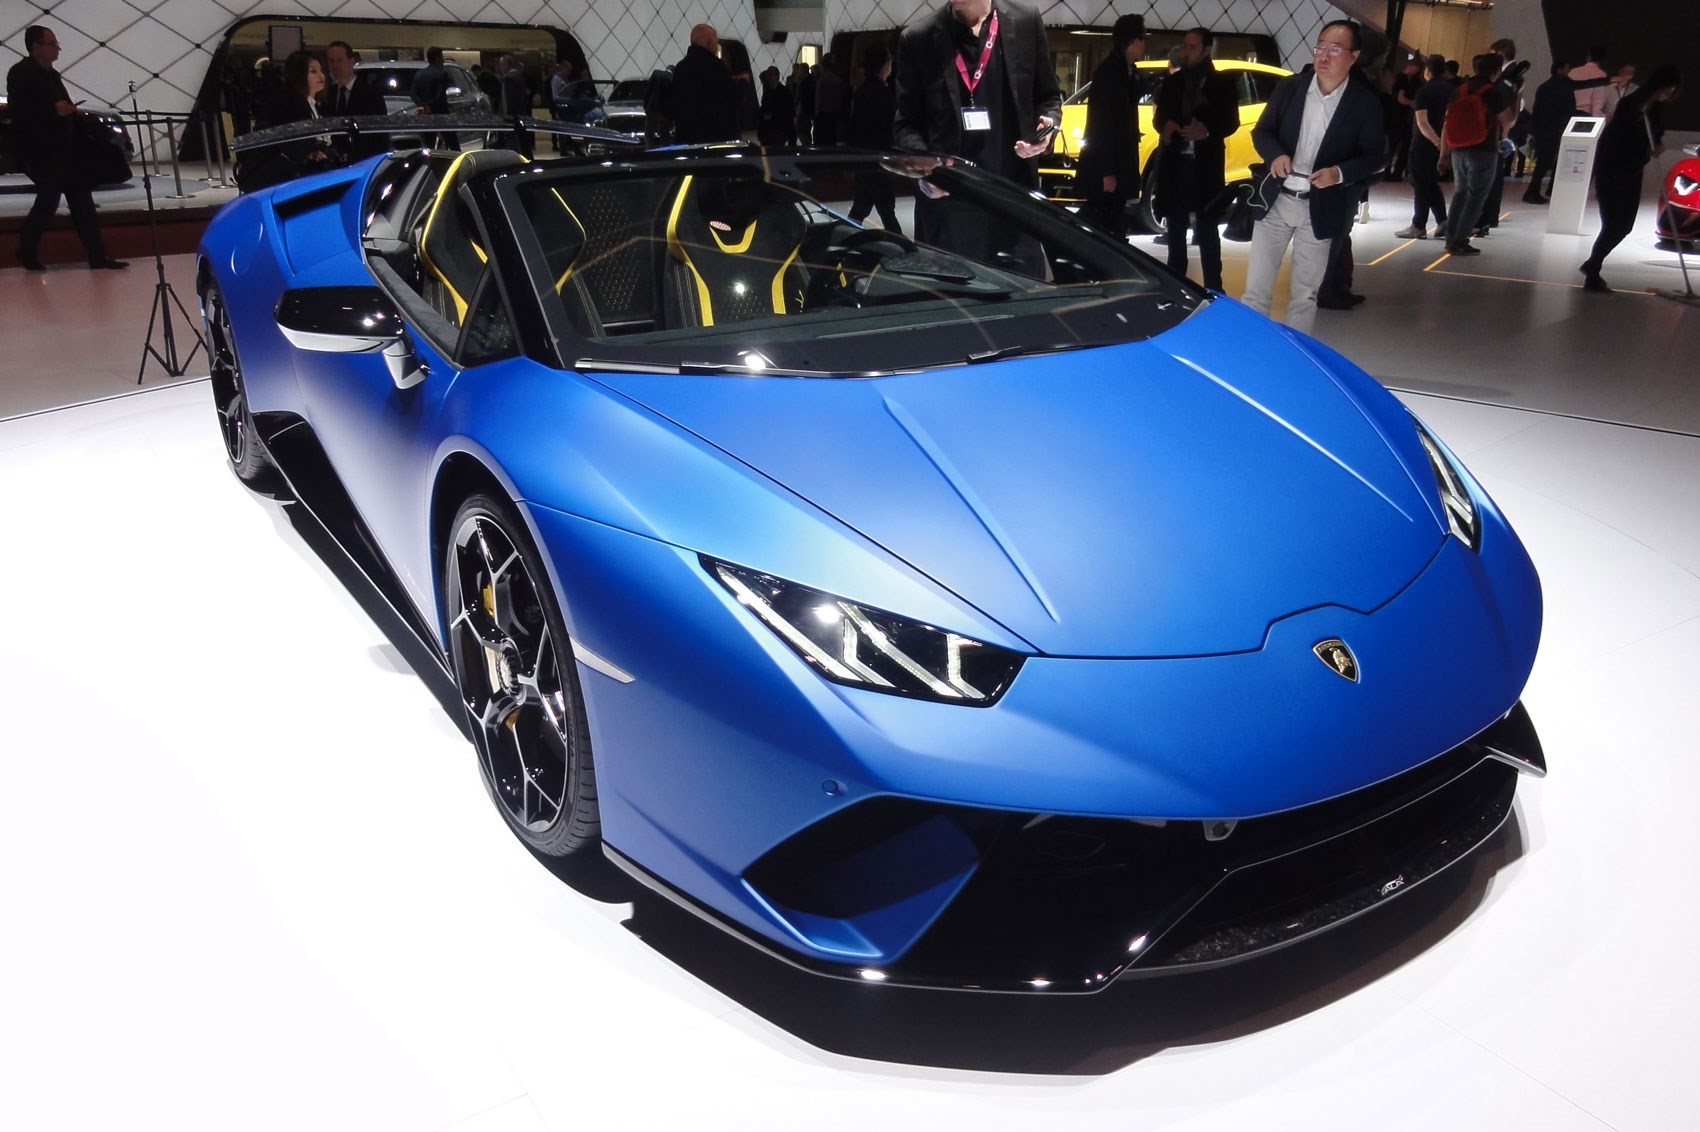 price specs s pin pics revealed photos green and lime lamborghini aventador roadster review